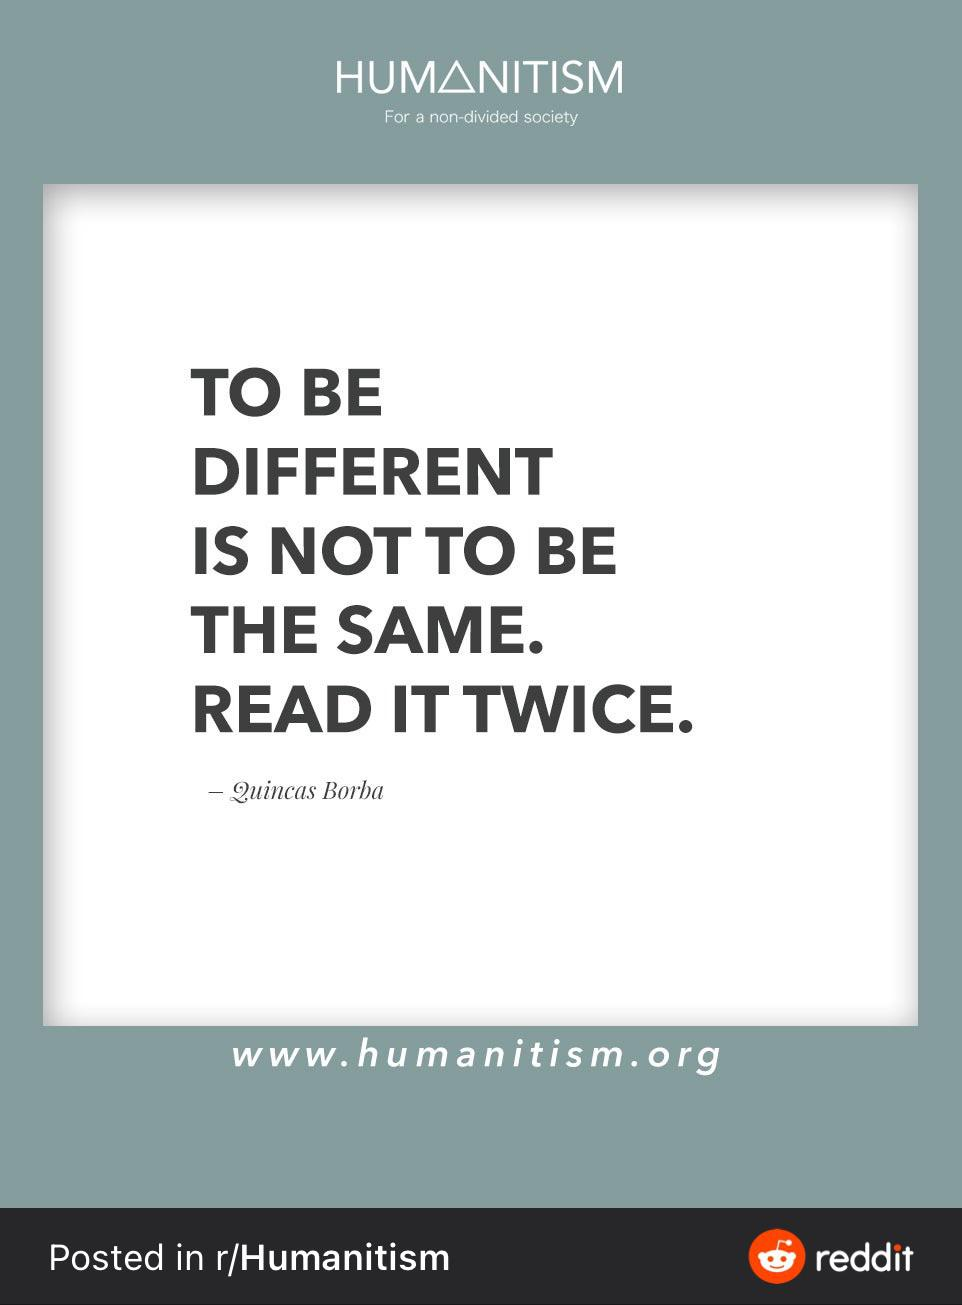 To be Different is not to be the same. [962 x 1208]